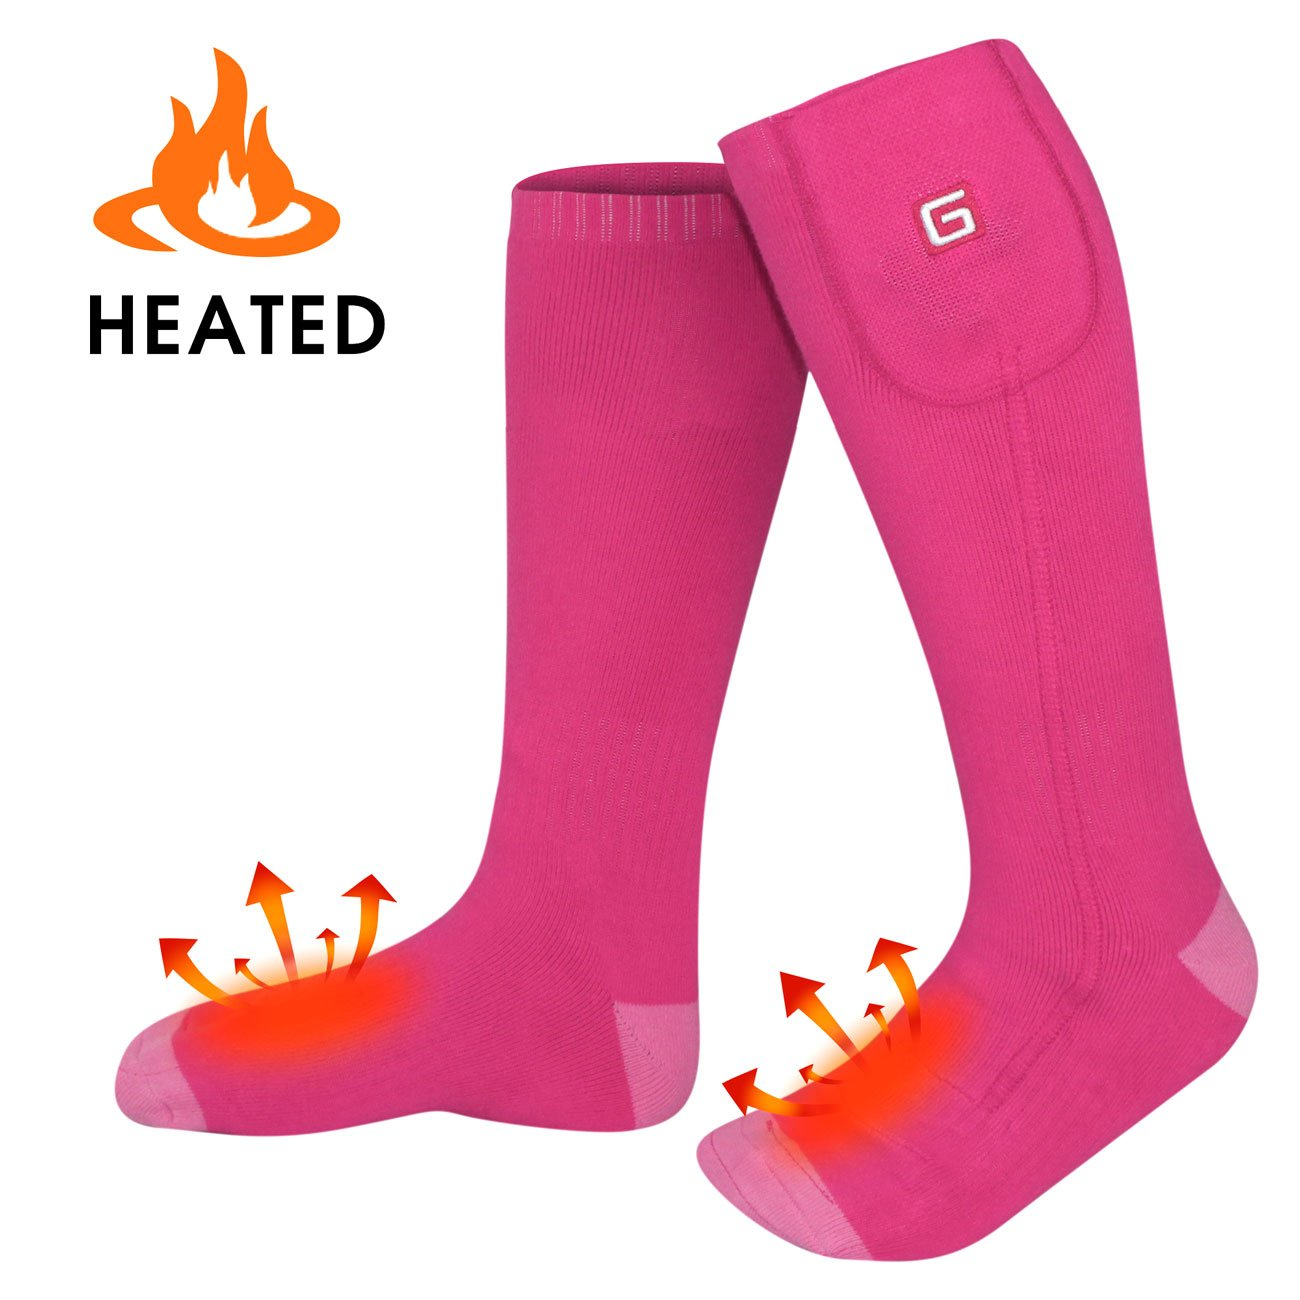 GLOBAL VASION Winter Electric Rechargeable Heating Socks